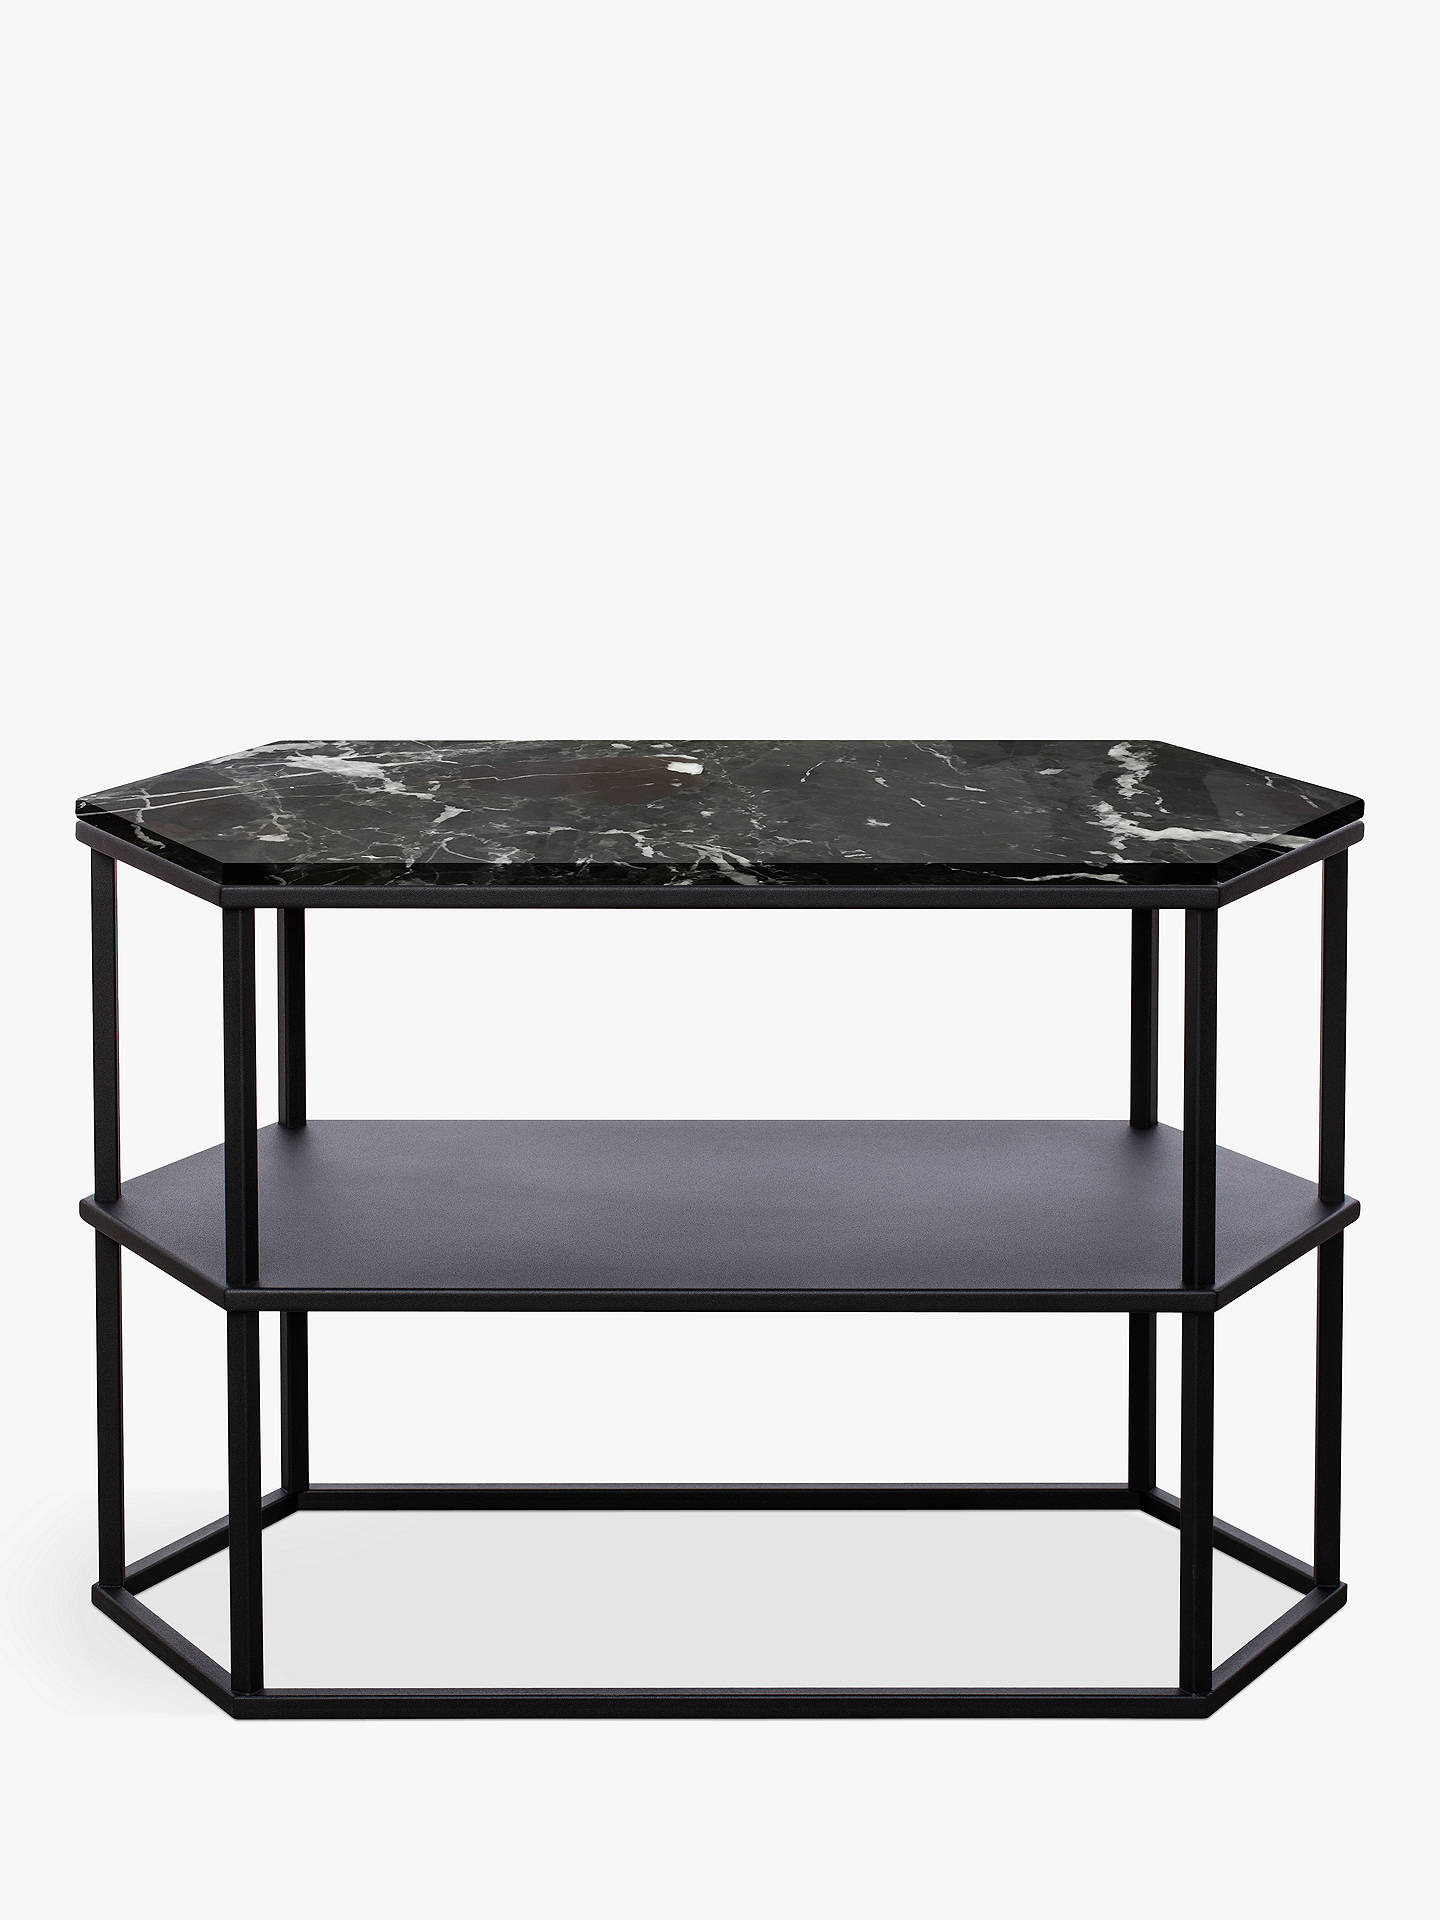 Buyanother brand favo long console table black online at johnlewis com